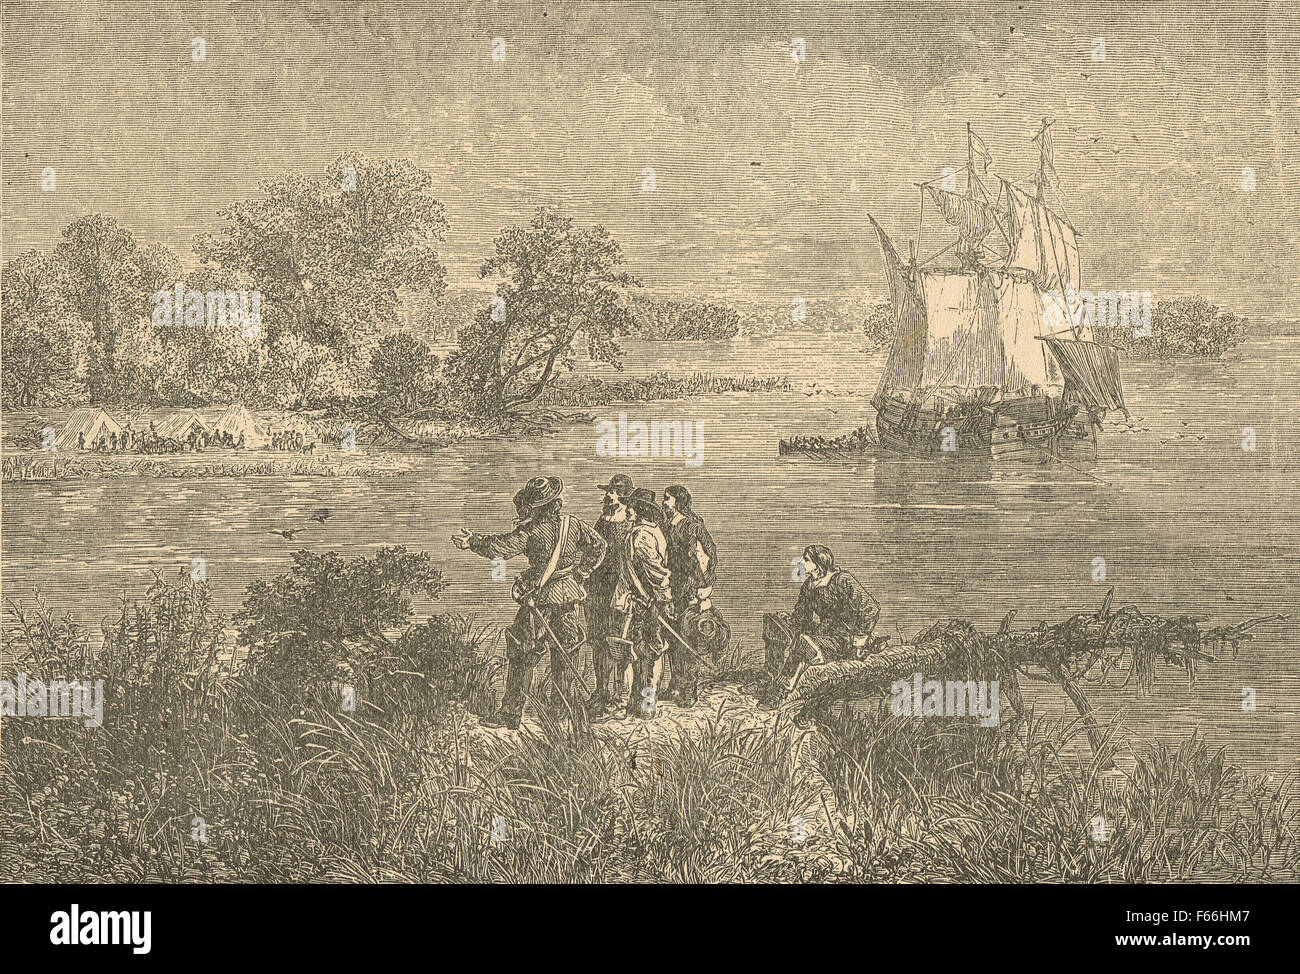 Penn's colonists on the Delaware circa 1682 - Stock Image